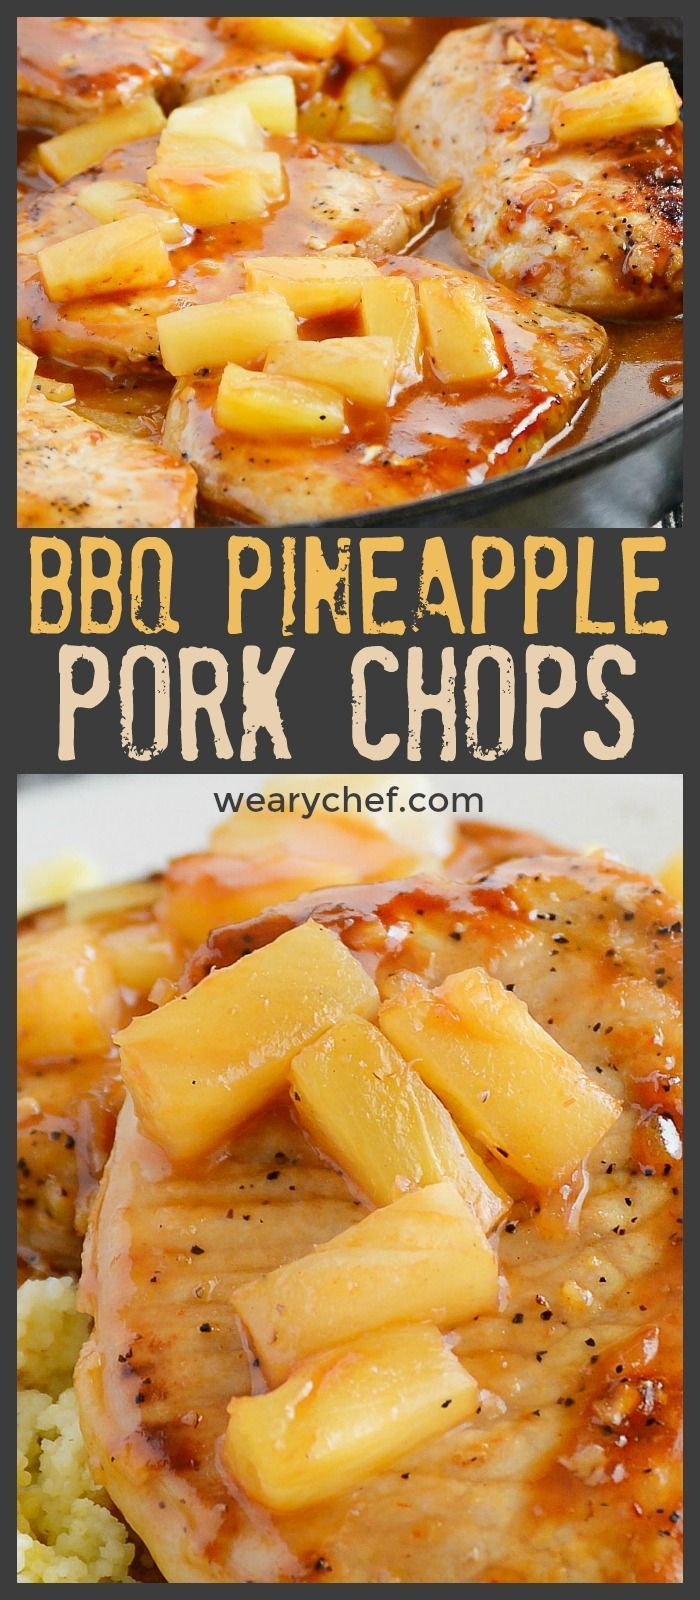 BBQ Pork Chops with Pineapple - The Weary Chef